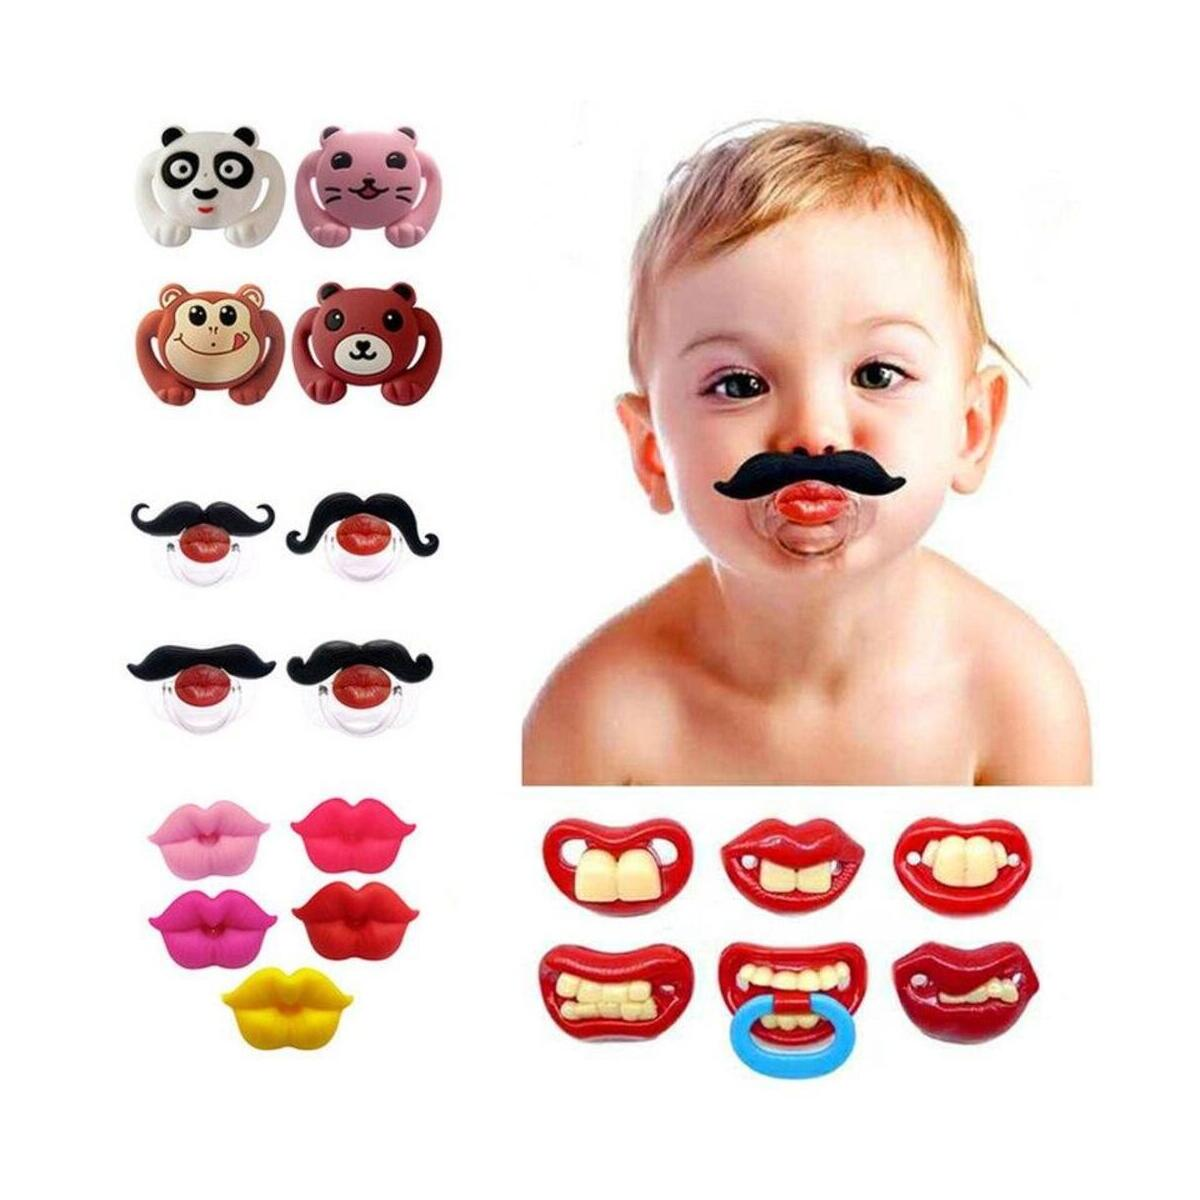 Mustache Funny Pacifier for Baby, Gentleman Mustache Pacifier Cute Baby Stuff for Newborn Infant, BPA Free Latex Free Made with Soft Silicone